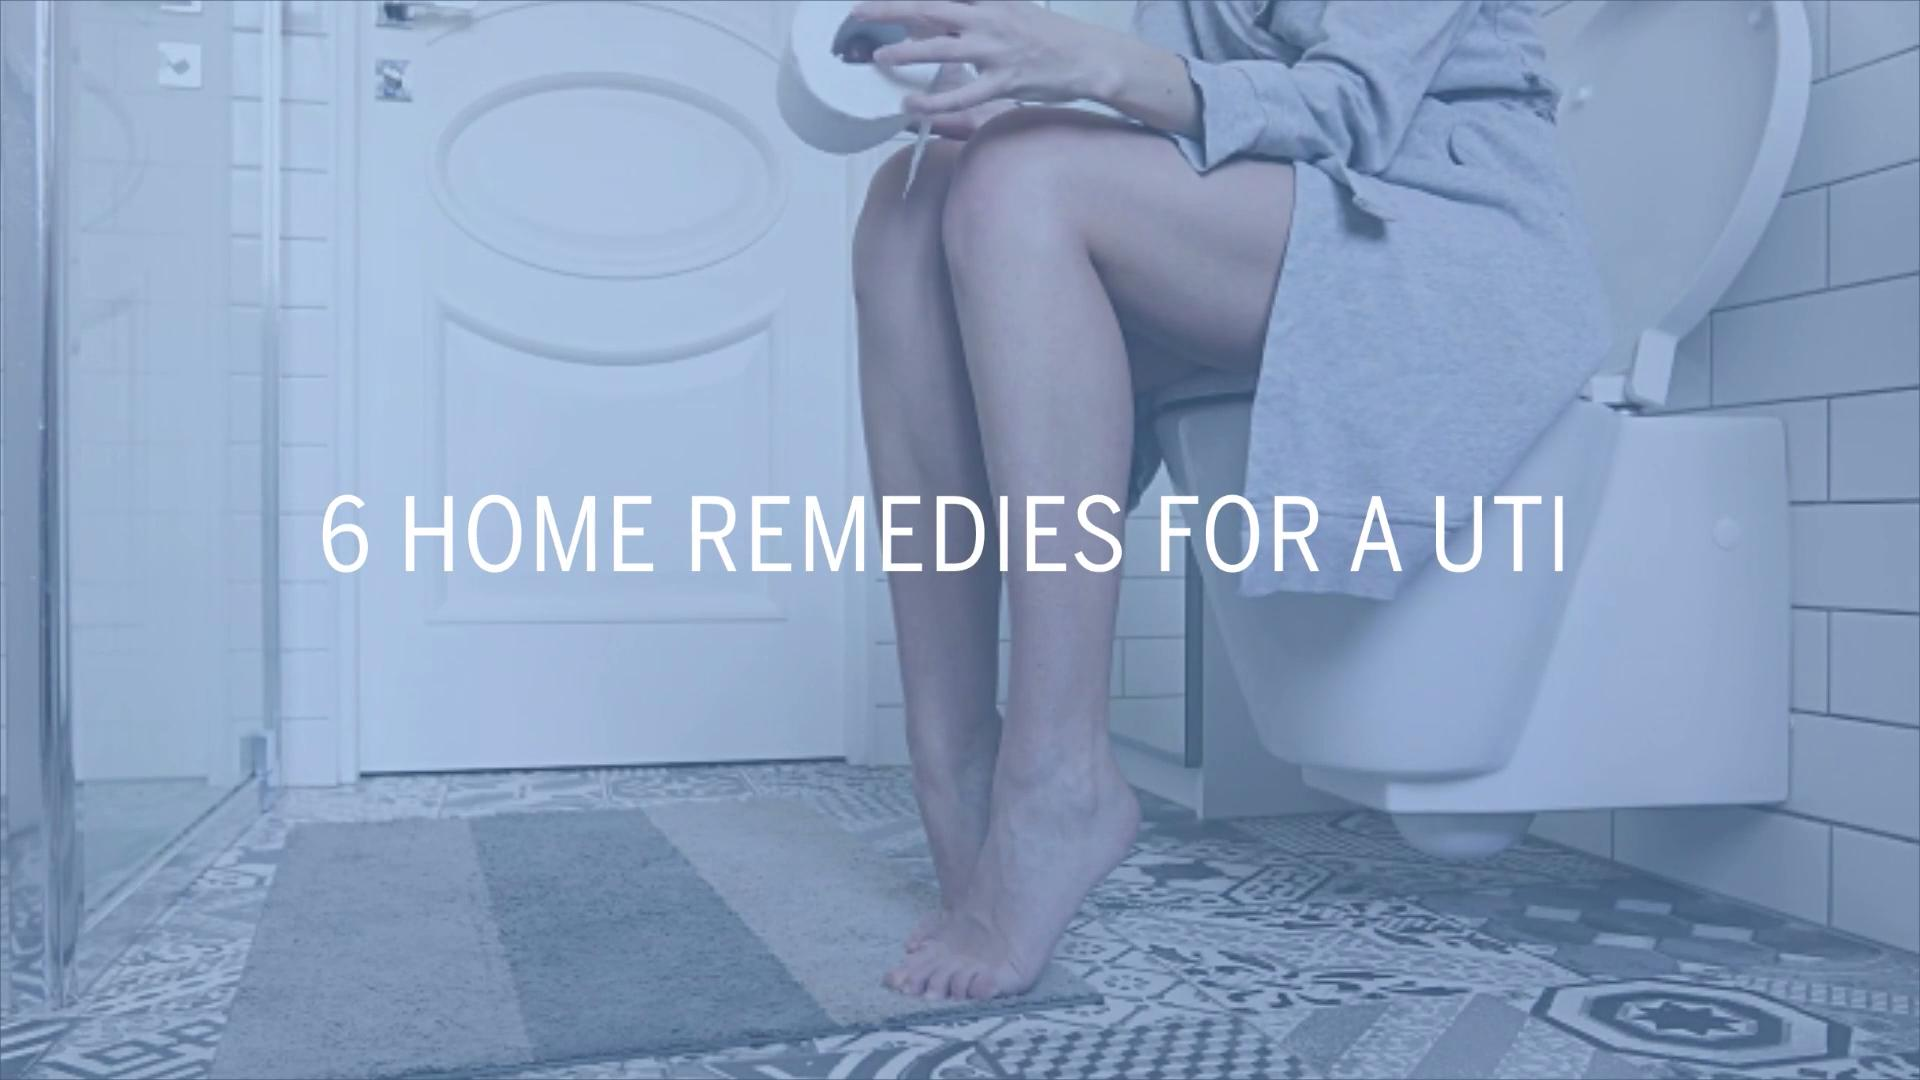 How to get rid of a UTI